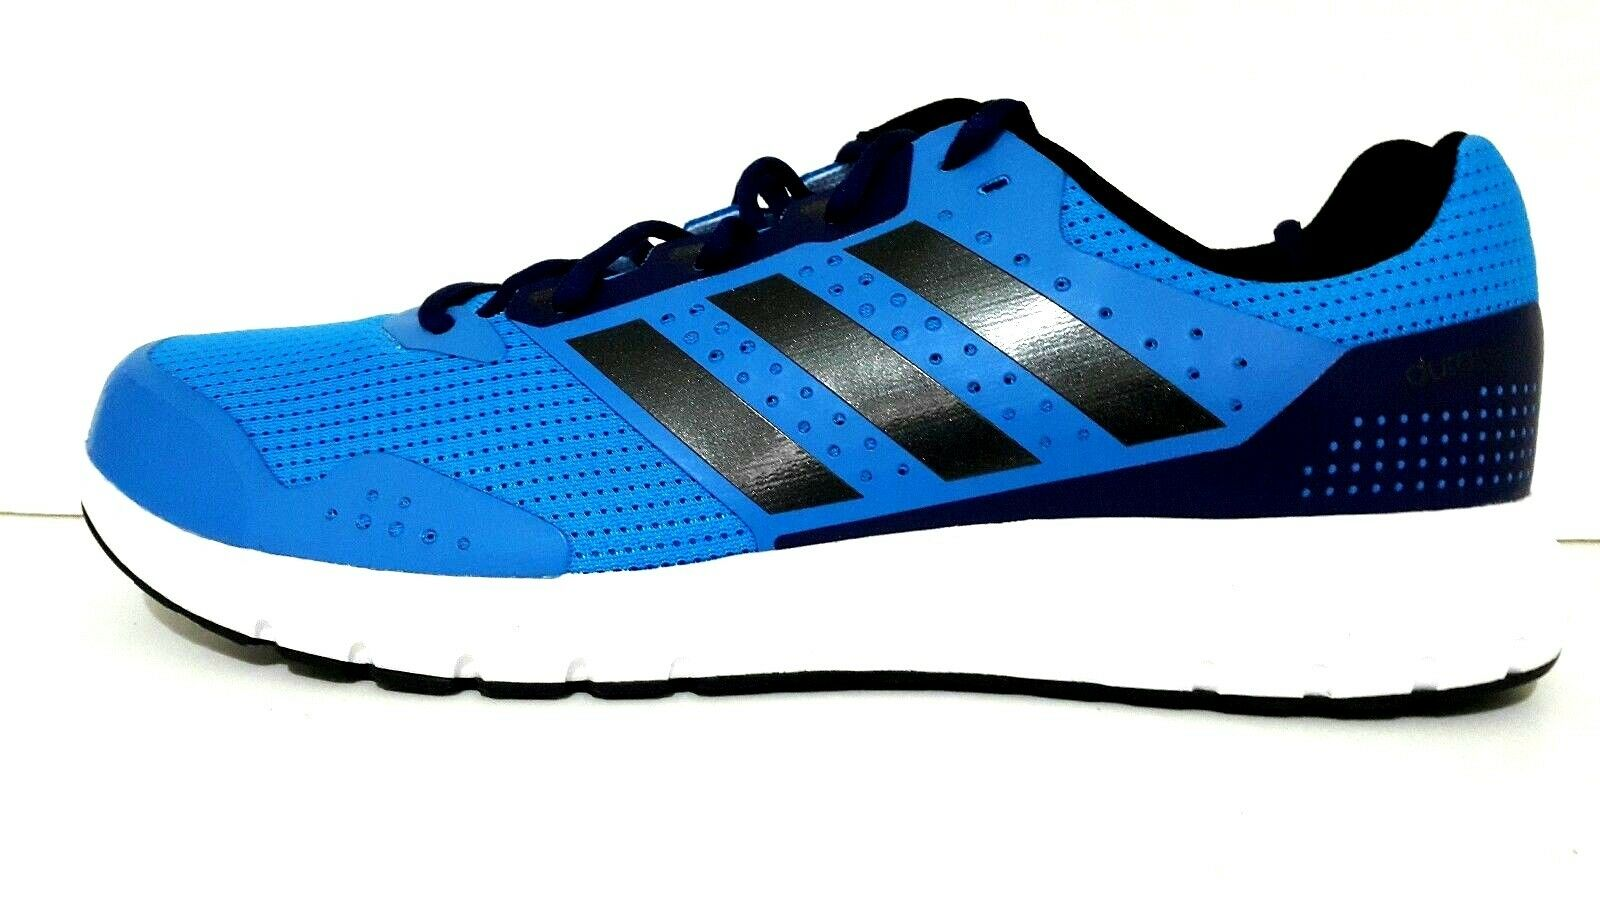 Adidas Adiprene Duramo 7 Mens Run Lace Up bluee shoes Sneakers Size 10.5 11.5 12